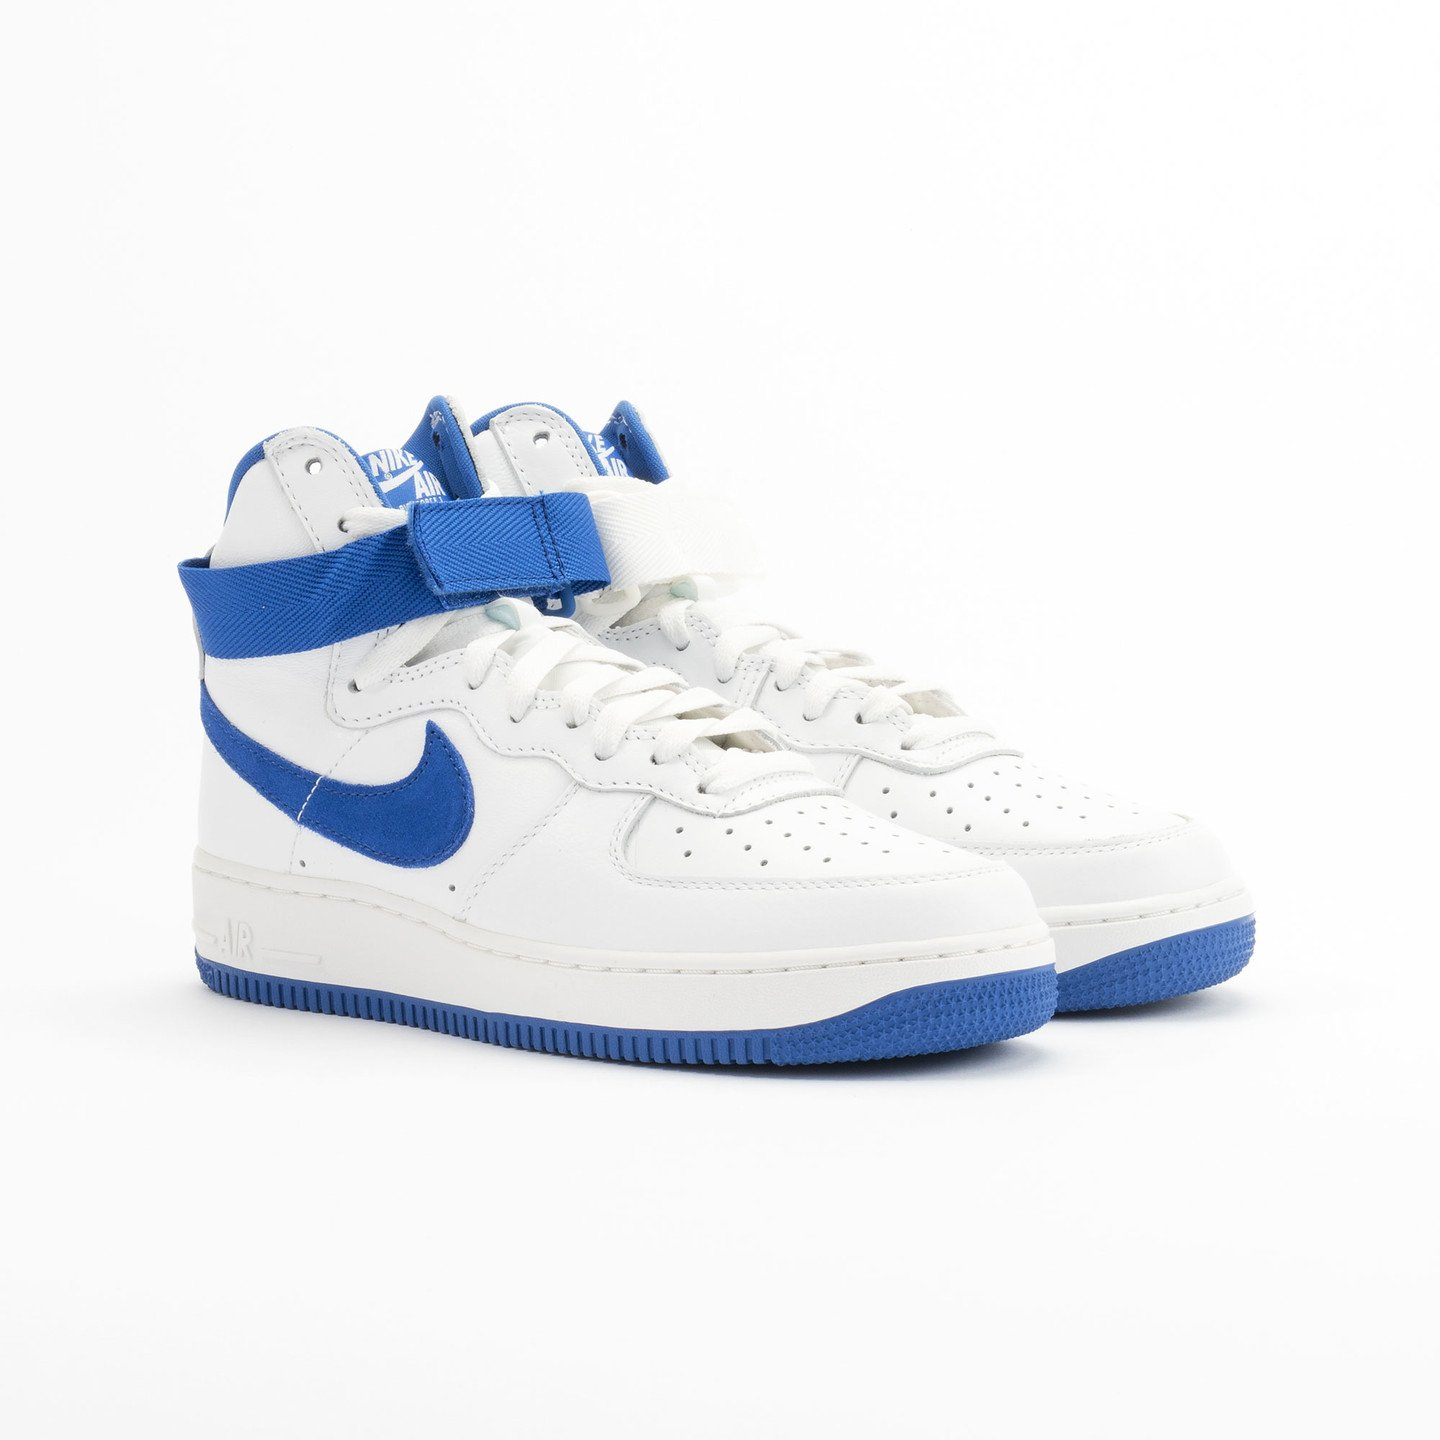 Nike Air Force 1 Hi Retro OG QS Summit White - Game Royal 743546-103-44